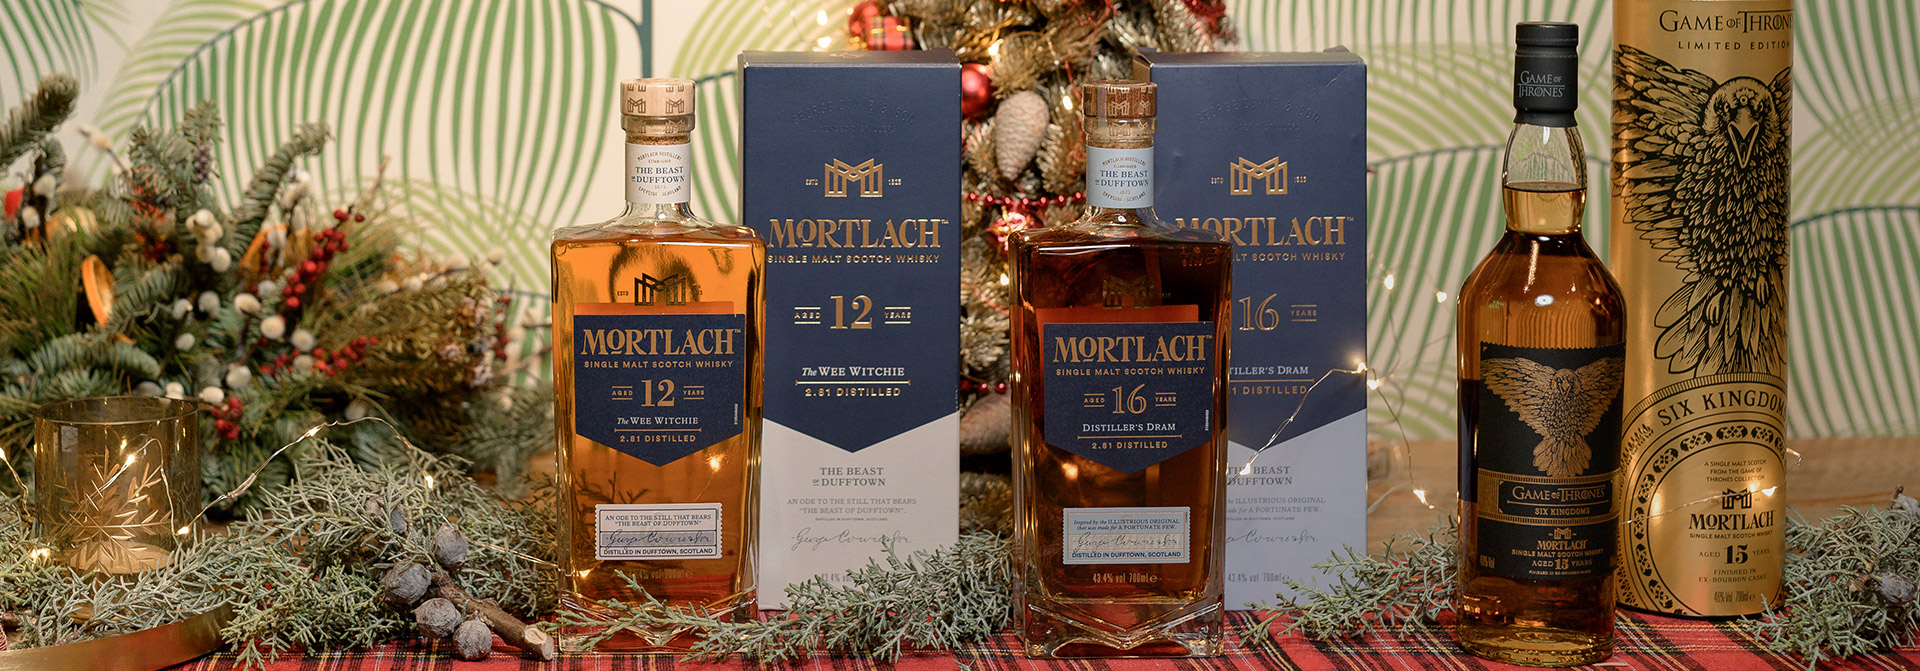 mortlach xmas whisky dinner the tasters club Mortlach 12 yo The Wee Witchie Mortlach 16 yo Distiller's Dram Mortlach 15 yo Six Kingdoms